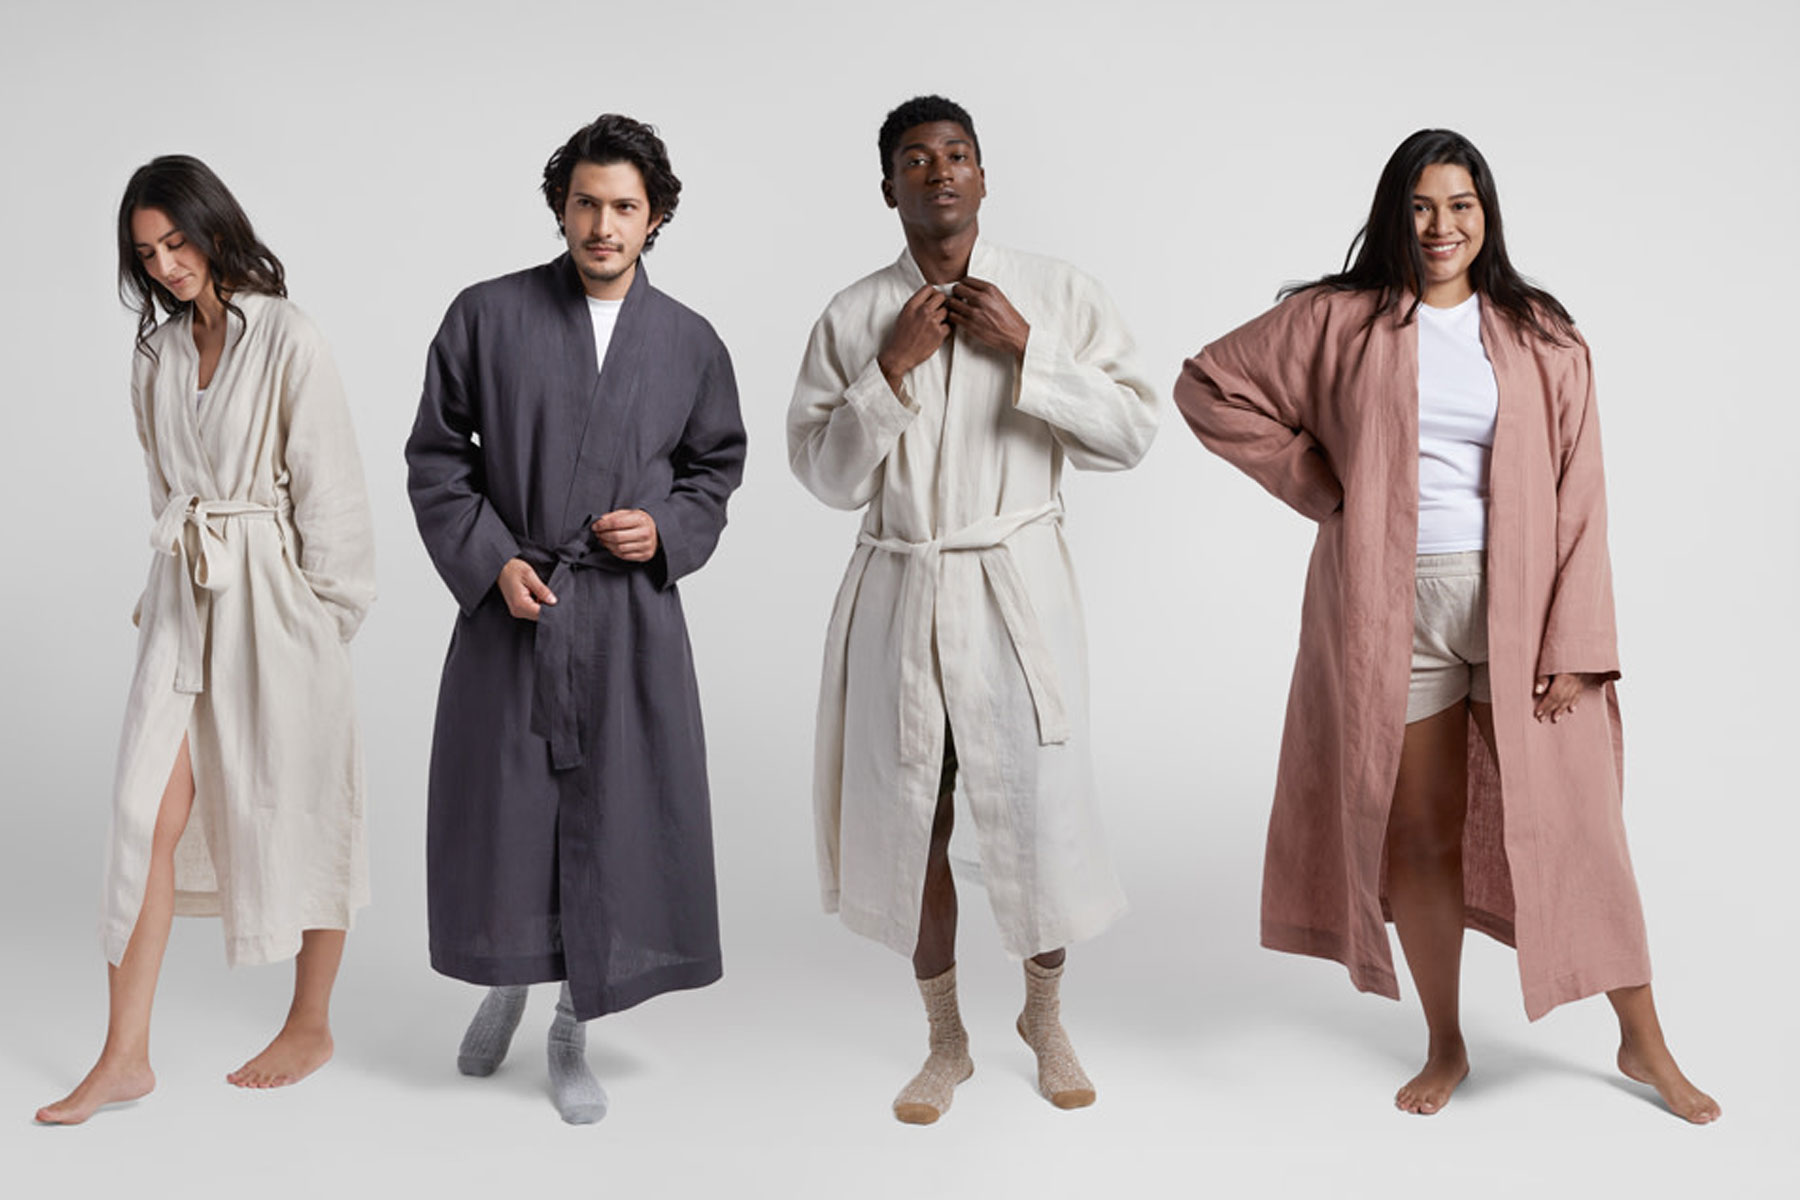 Men and women wearing linen bathrobes